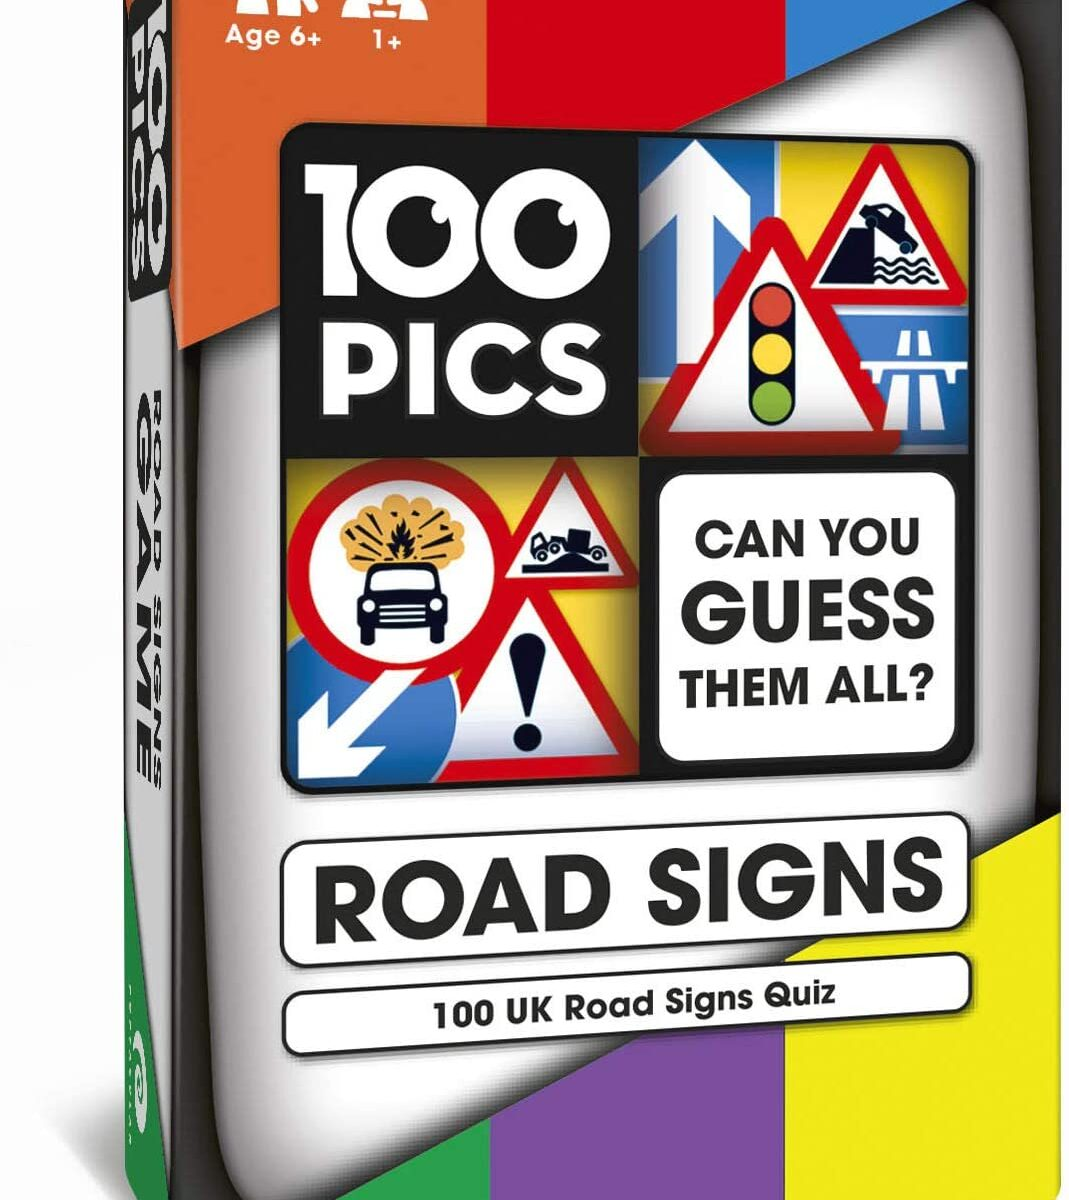 100 PICS Road Signs Travel Game - Traffic Sign Flash Cards, Helps Learn DVLA Highway Code Theory Driving Test UK 2